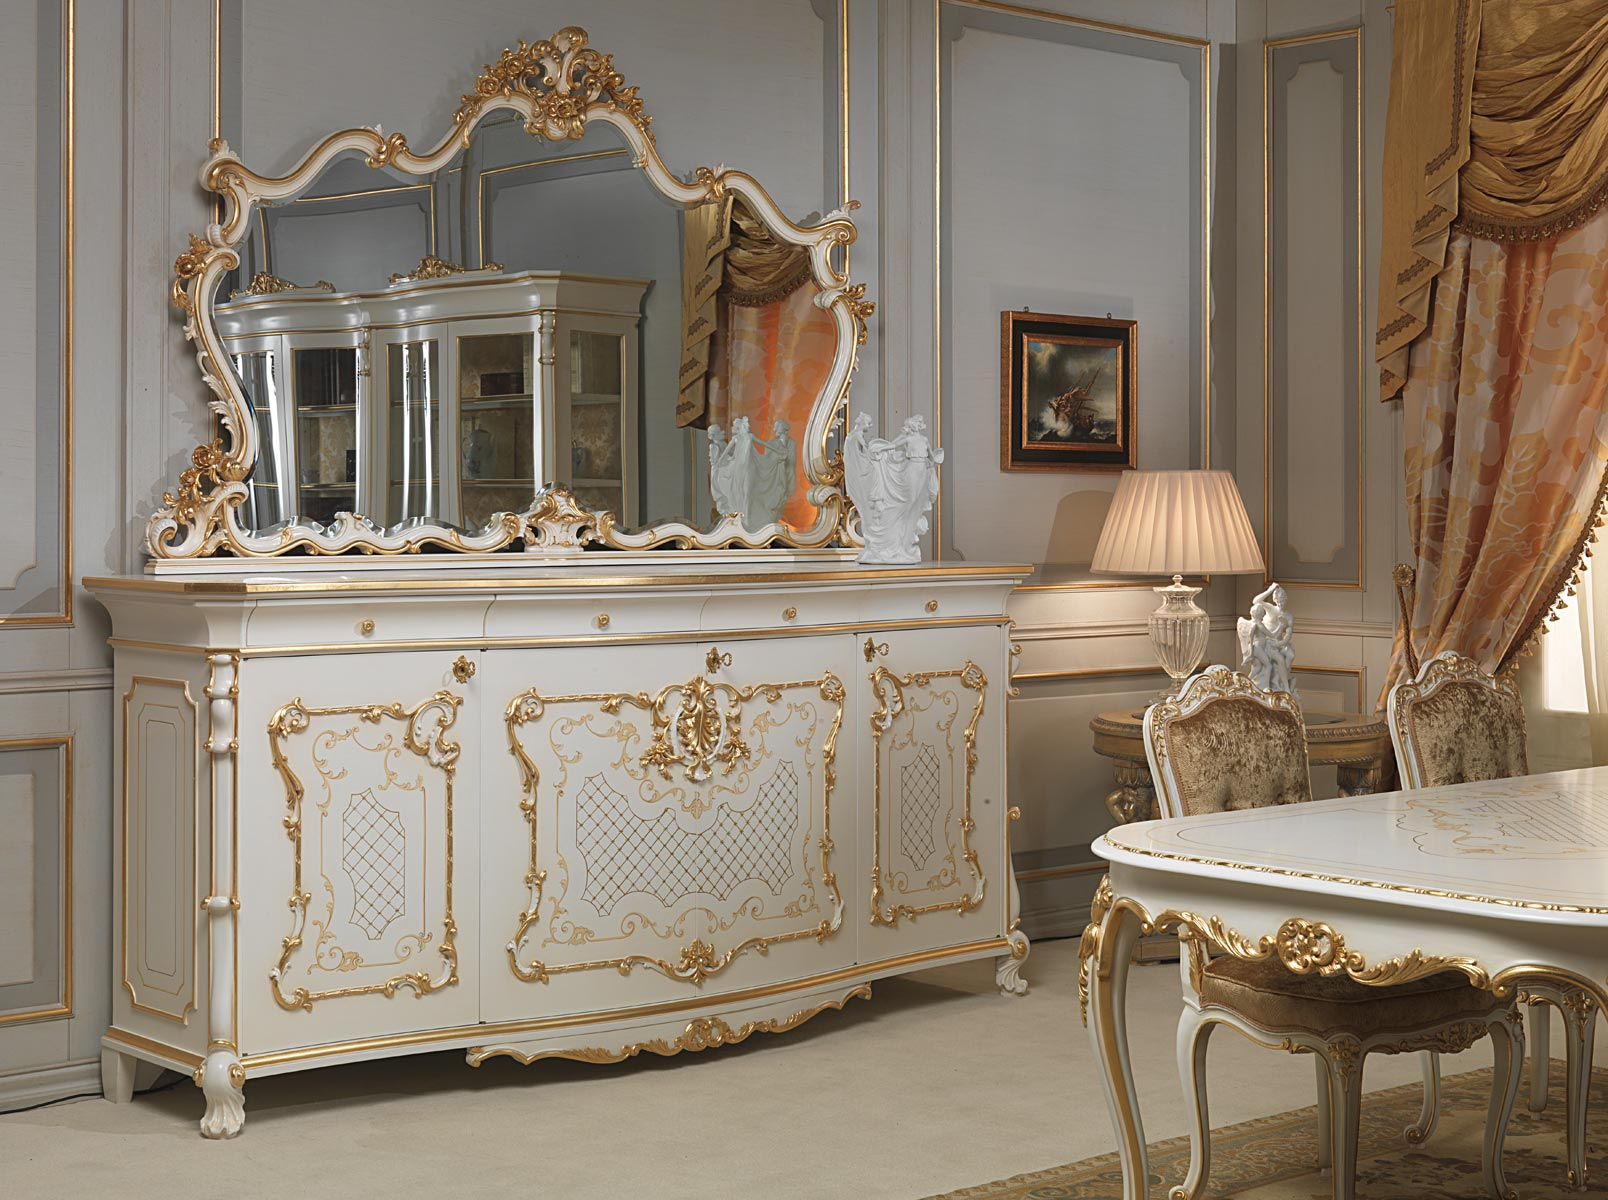 Sideboard Table And Chairs In Louis Xv Style Vimercati